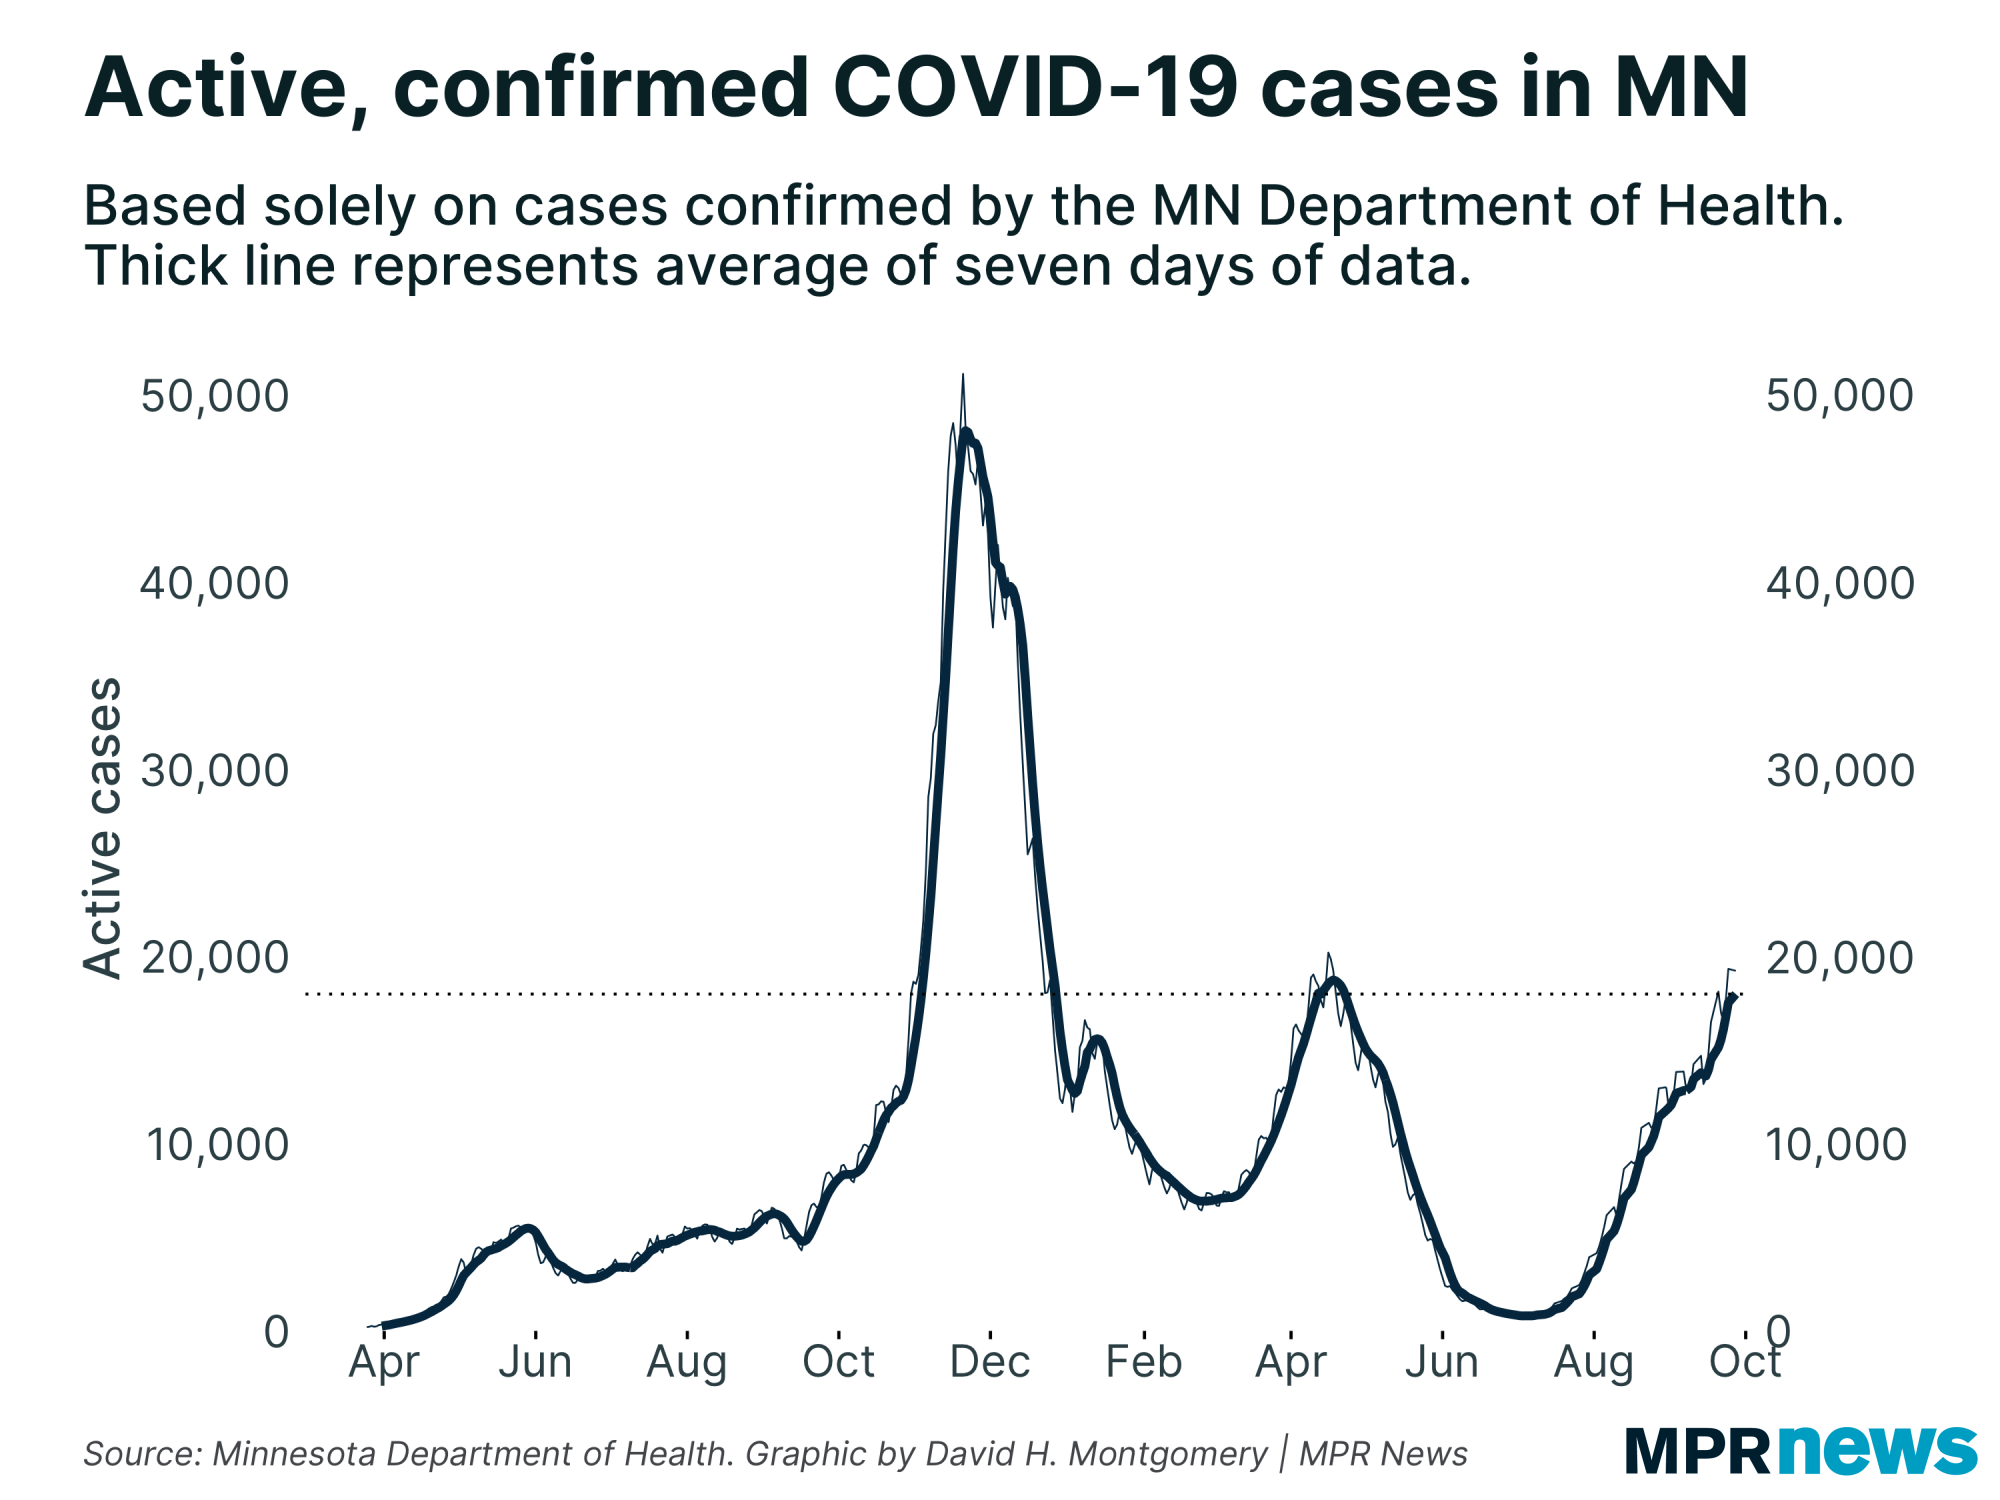 Active, confirmed COVID-19 cases in Minnesota